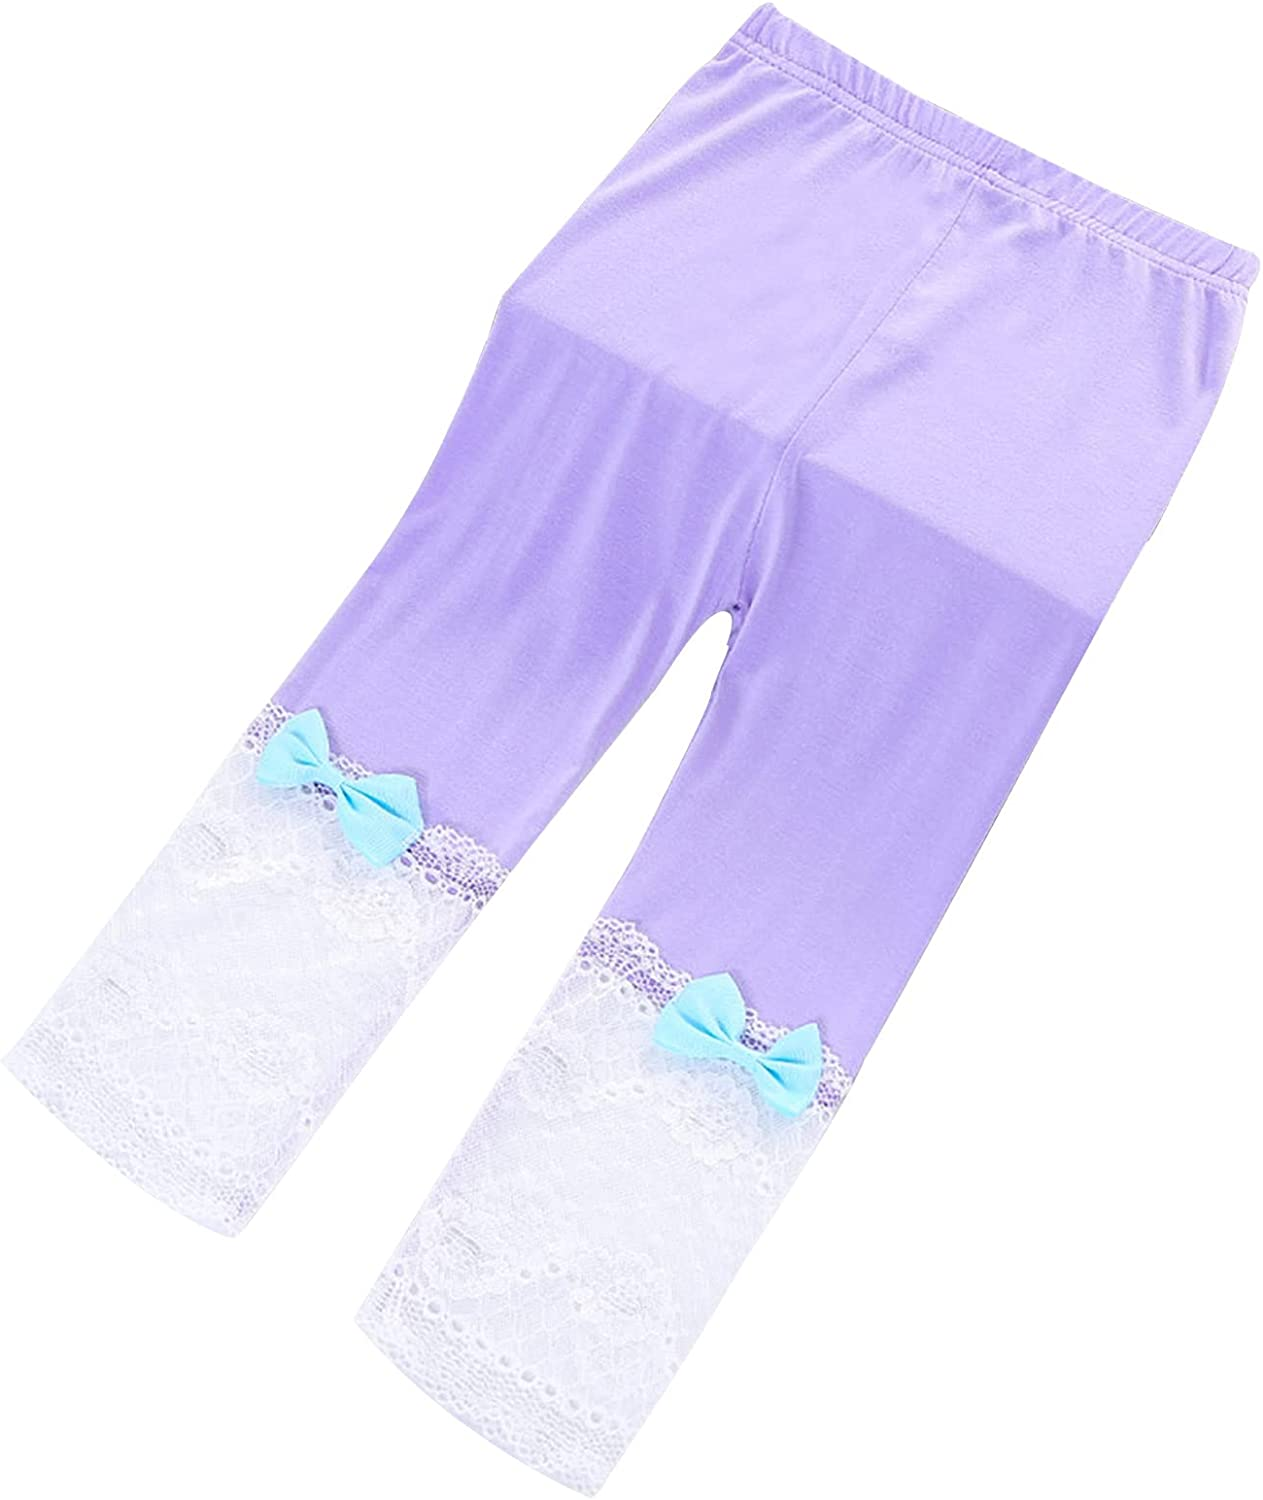 Aislor Girls Cotton Capri Leggings Kids Summer Footless Tights Cropped Leggings School Dance Yoga Pants with Lace Bow